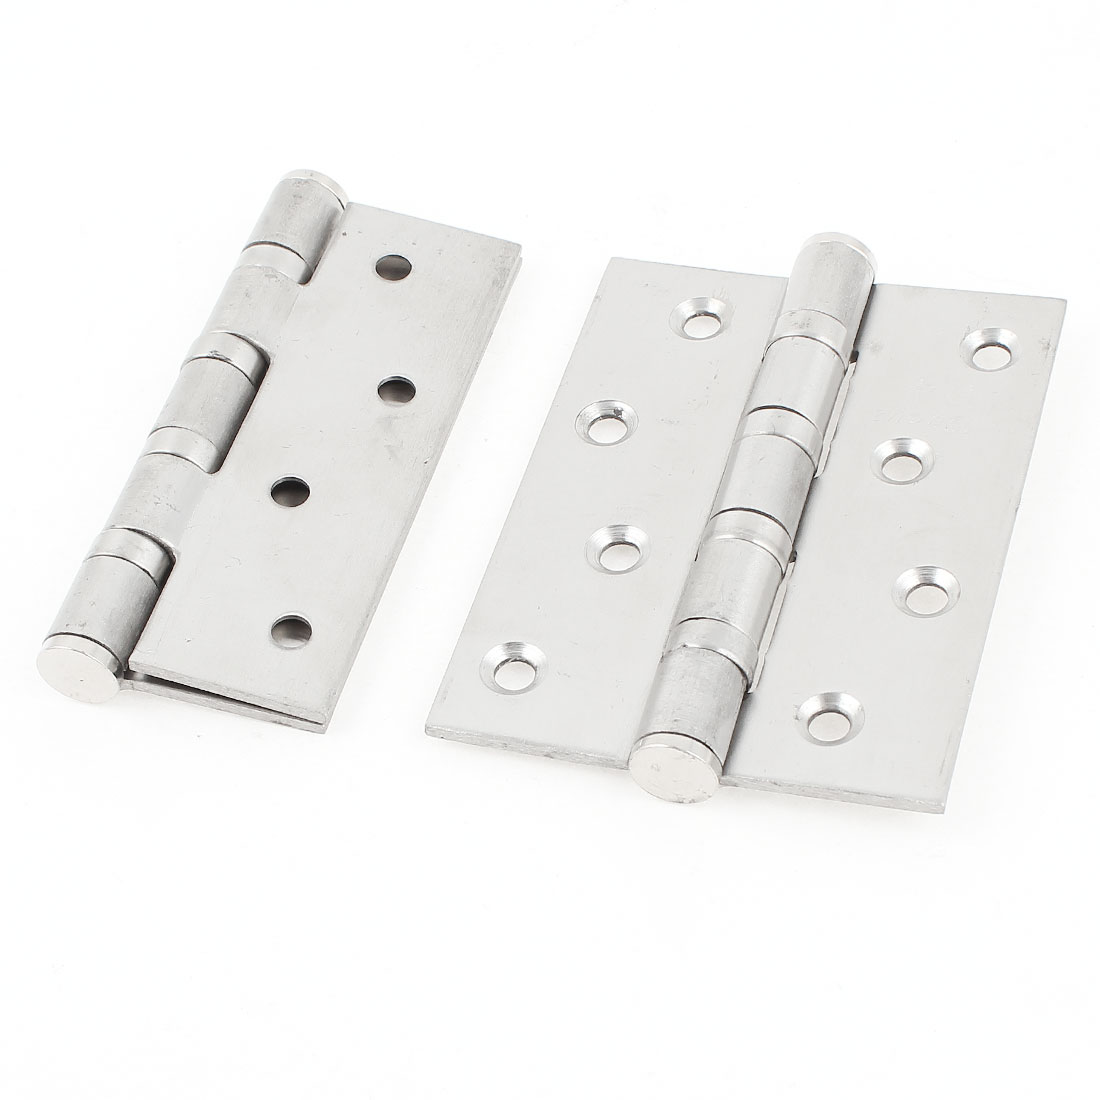 "2 Pcs 4"" Long Stainless Steel Door Hinges Silver Tone"